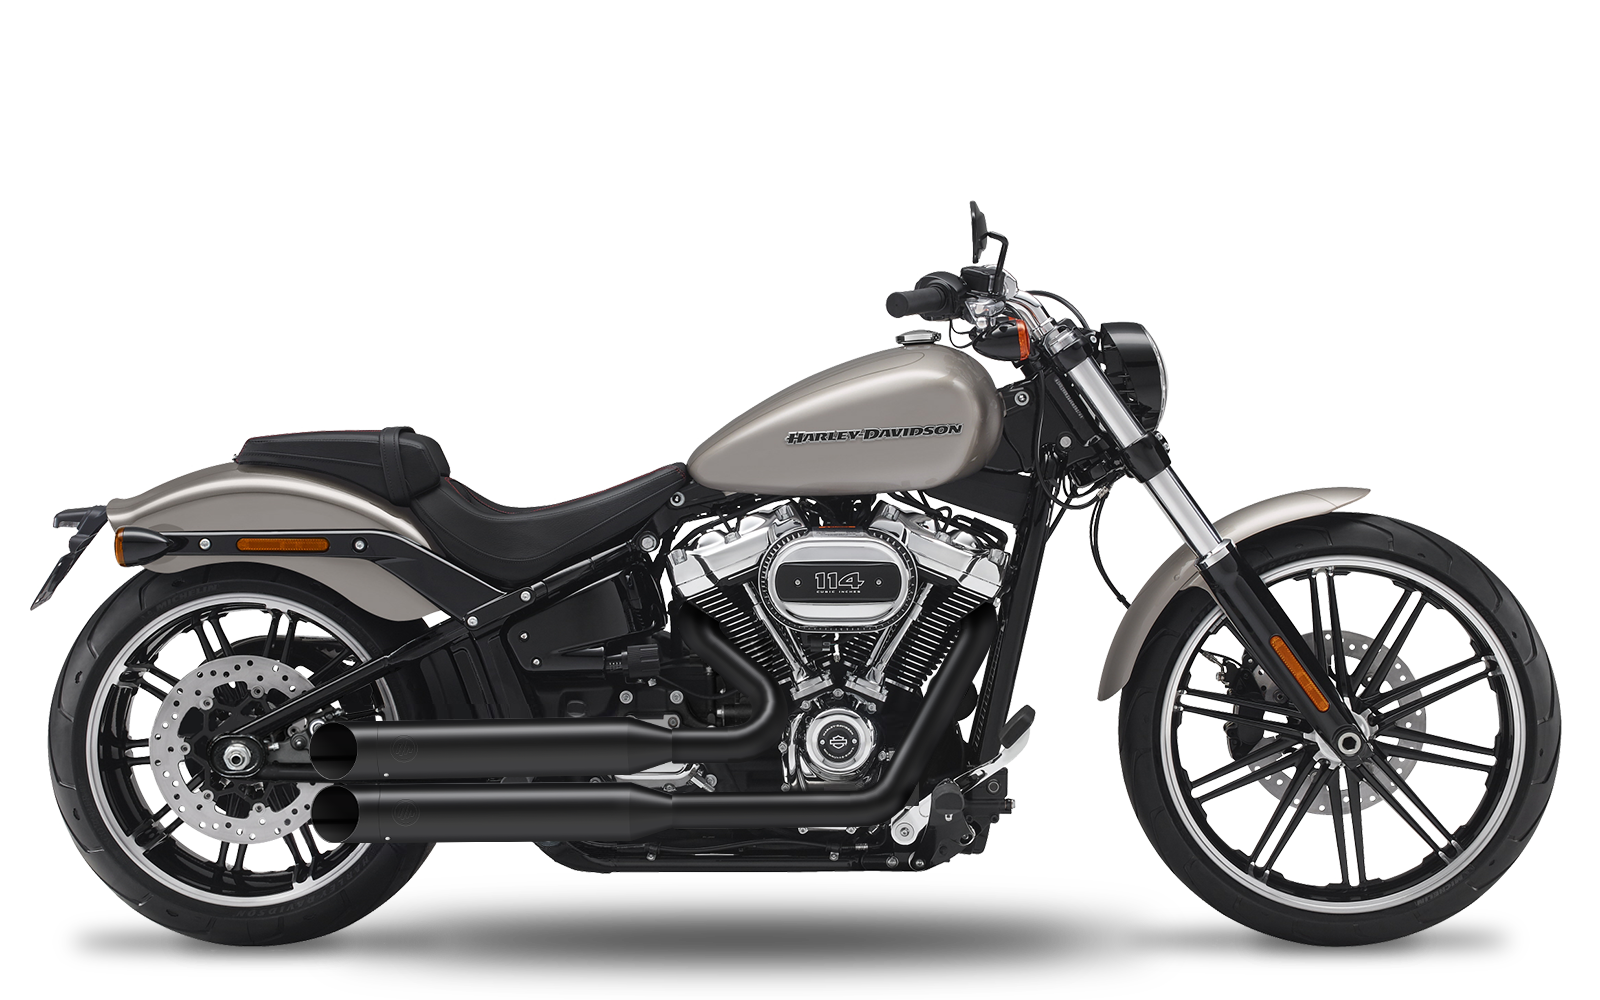 Softail - Breakout - ME107 - 2018-2019 - Complete systems